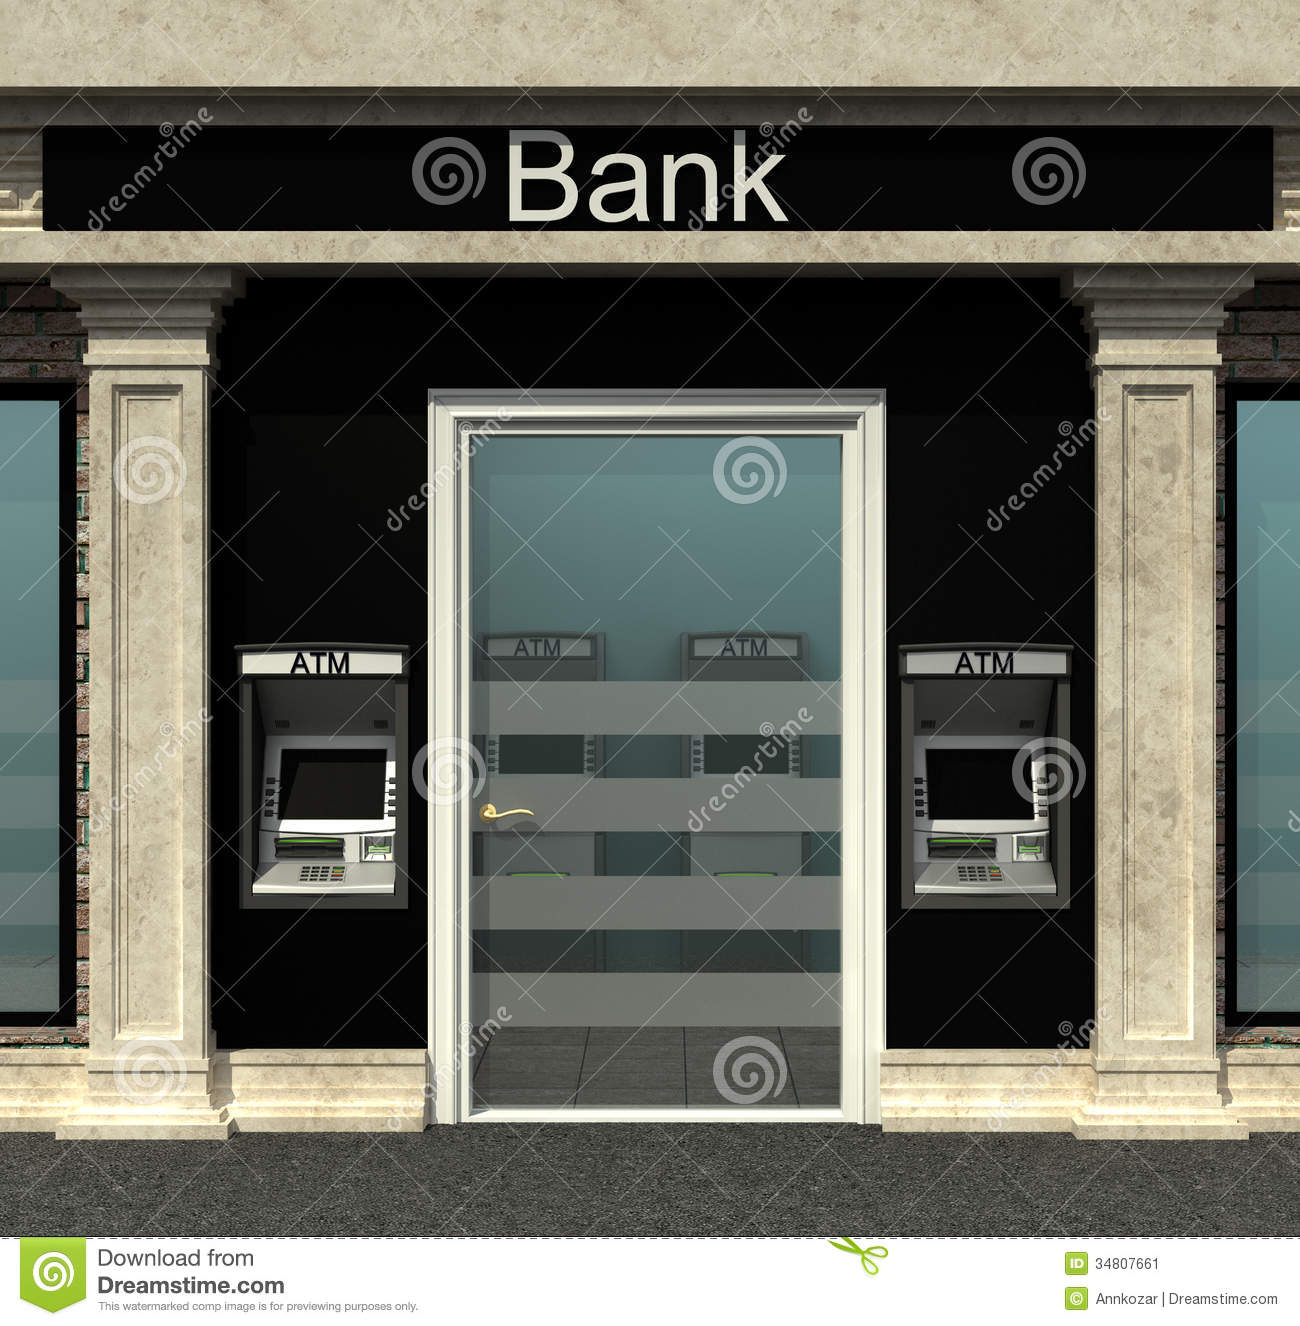 Bank branch clipart png black and white download Bank Branch With Automated Teller Machine Stock Image - Image ... png black and white download